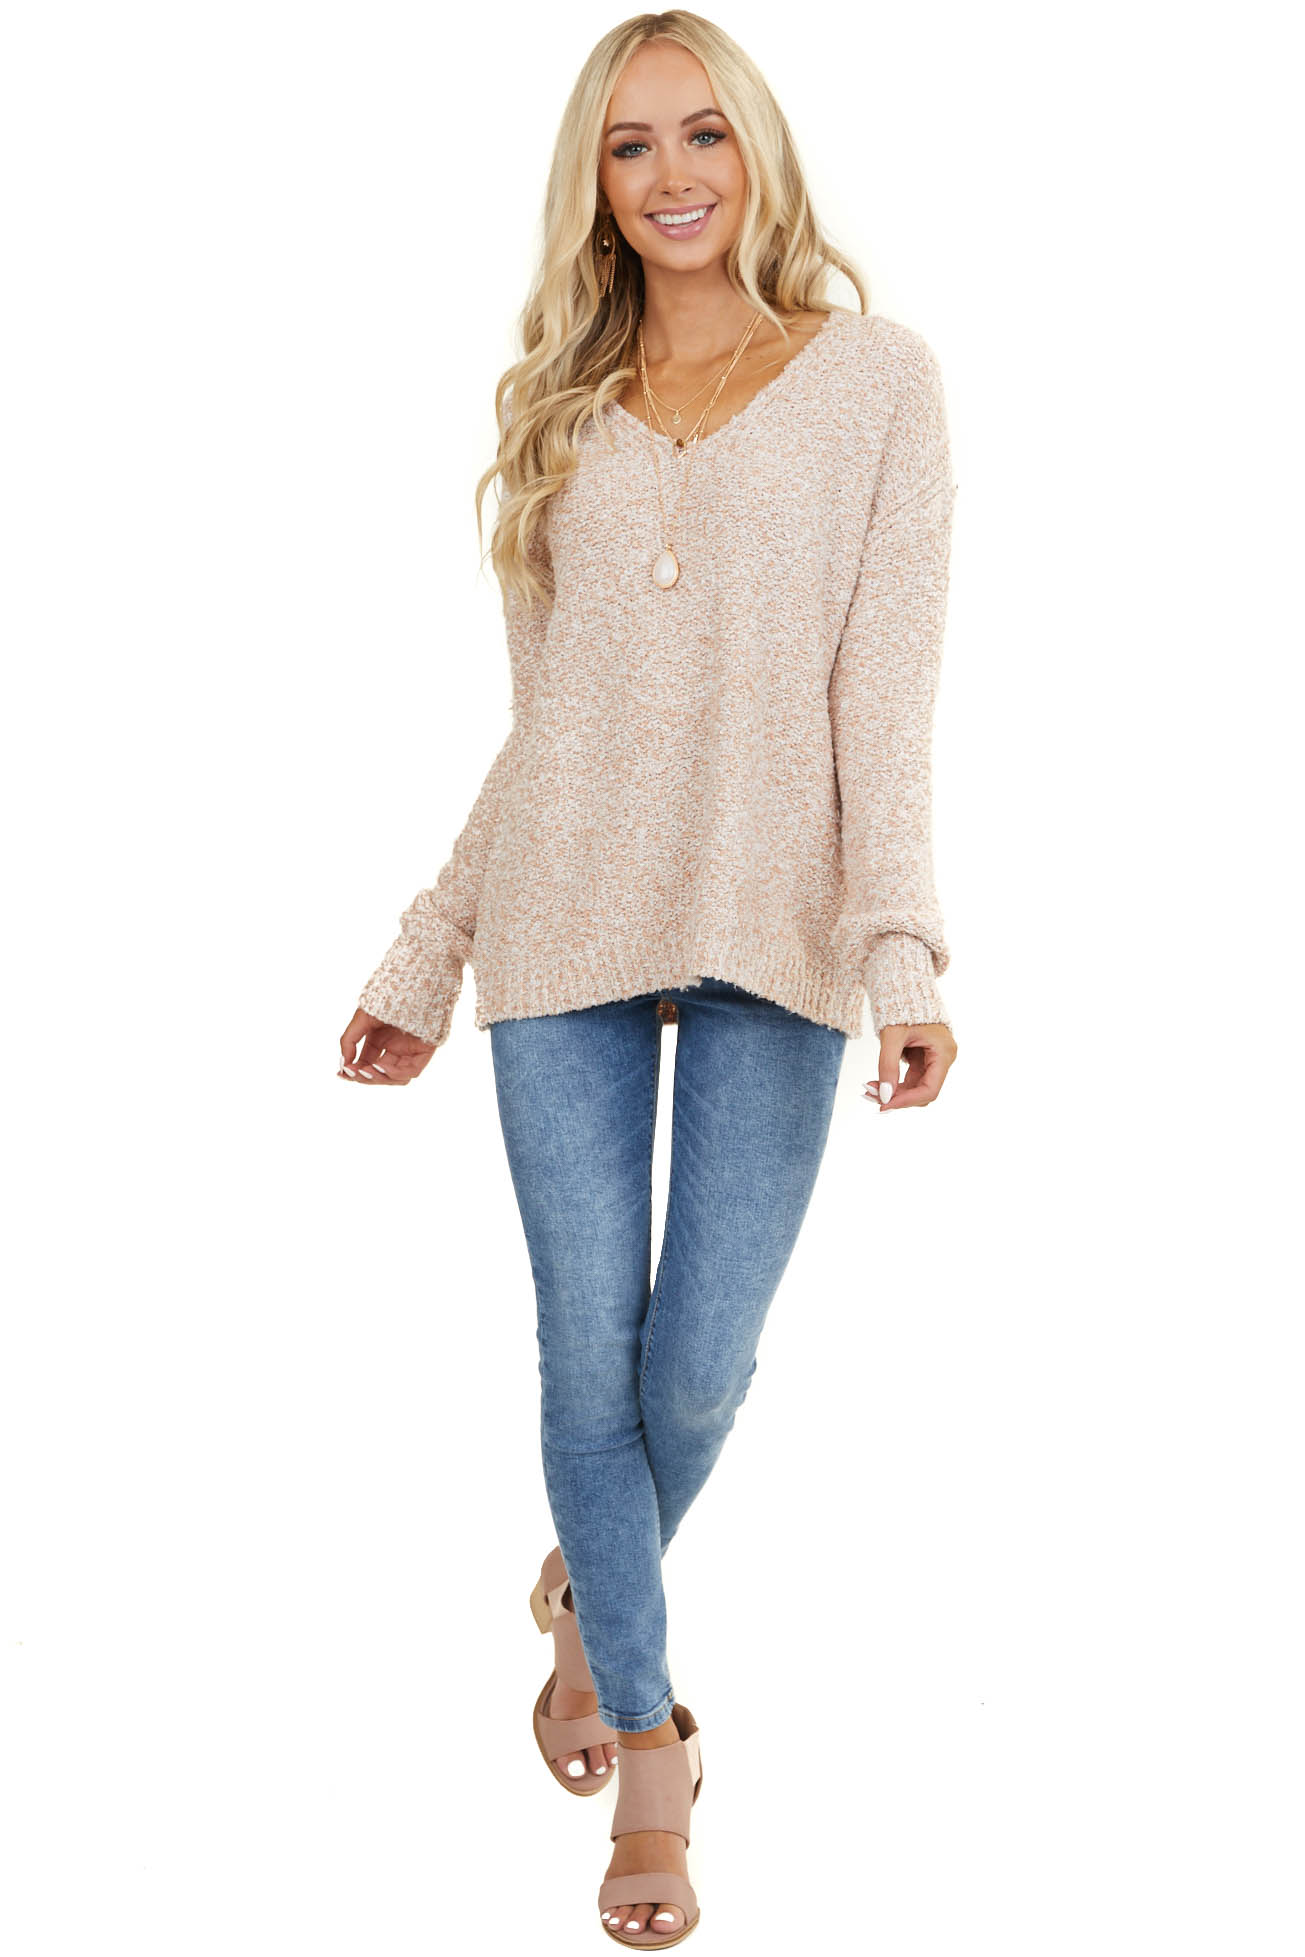 Heathered Peach V Neckline Sweater with Long Sleeves